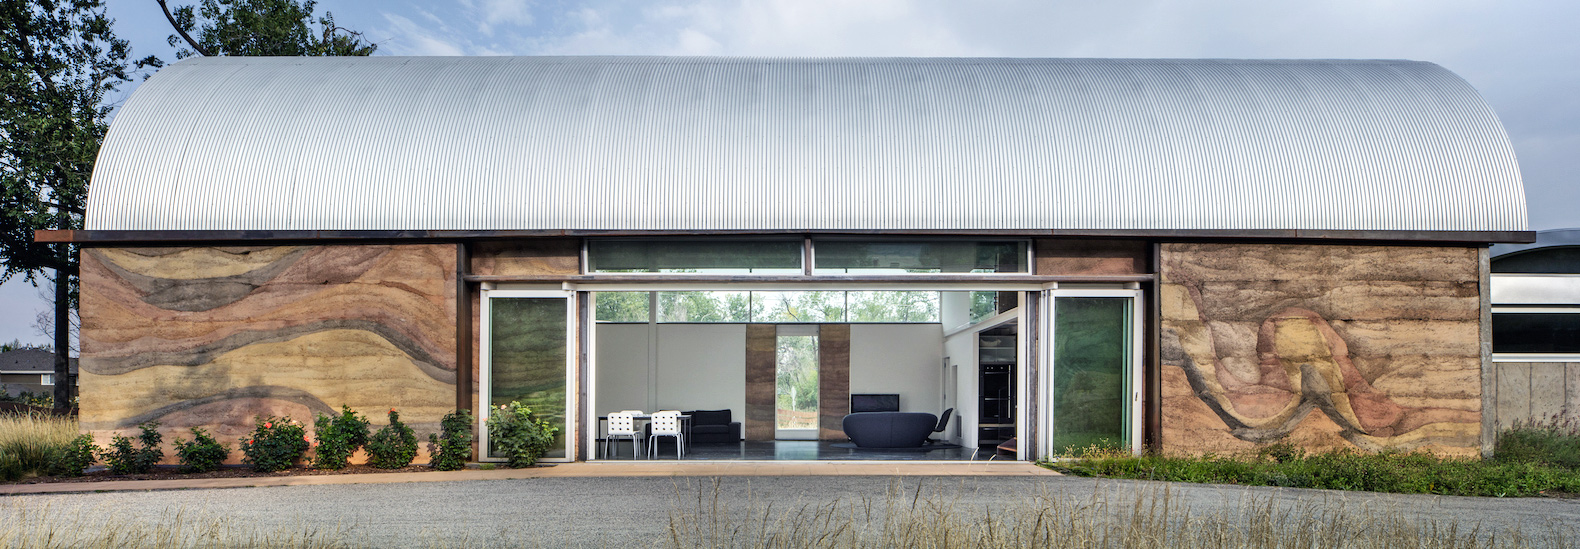 Exceptional Minimalist Artist Retreat With Rammed Earth Walls Draws Upon 100% Renewable  Resources